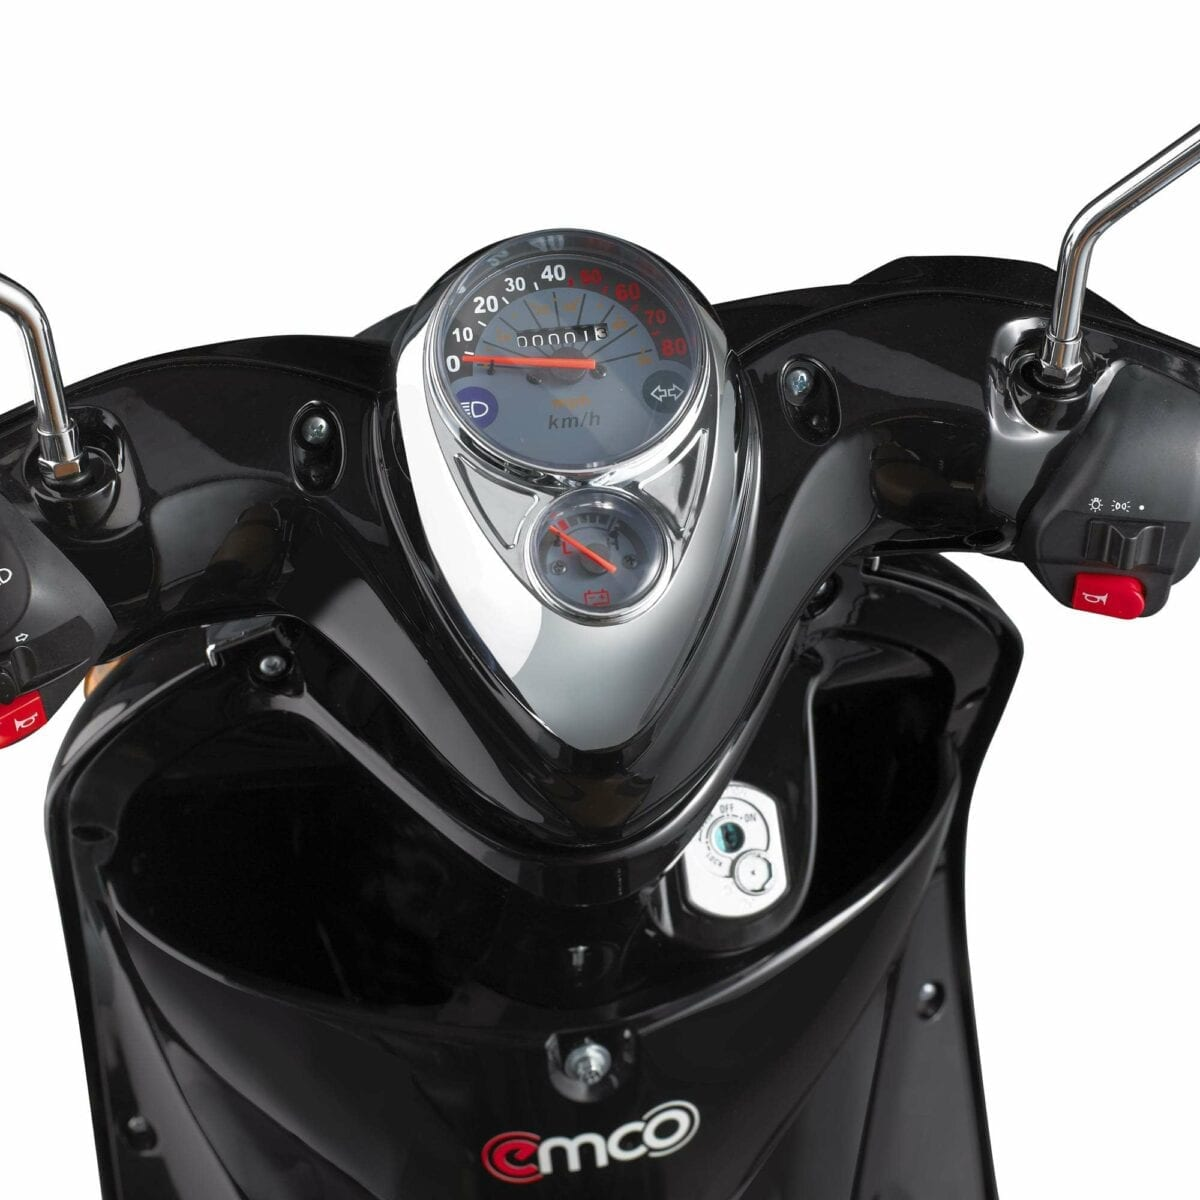 emco NOVI C 1500 Electric Scooter black 2